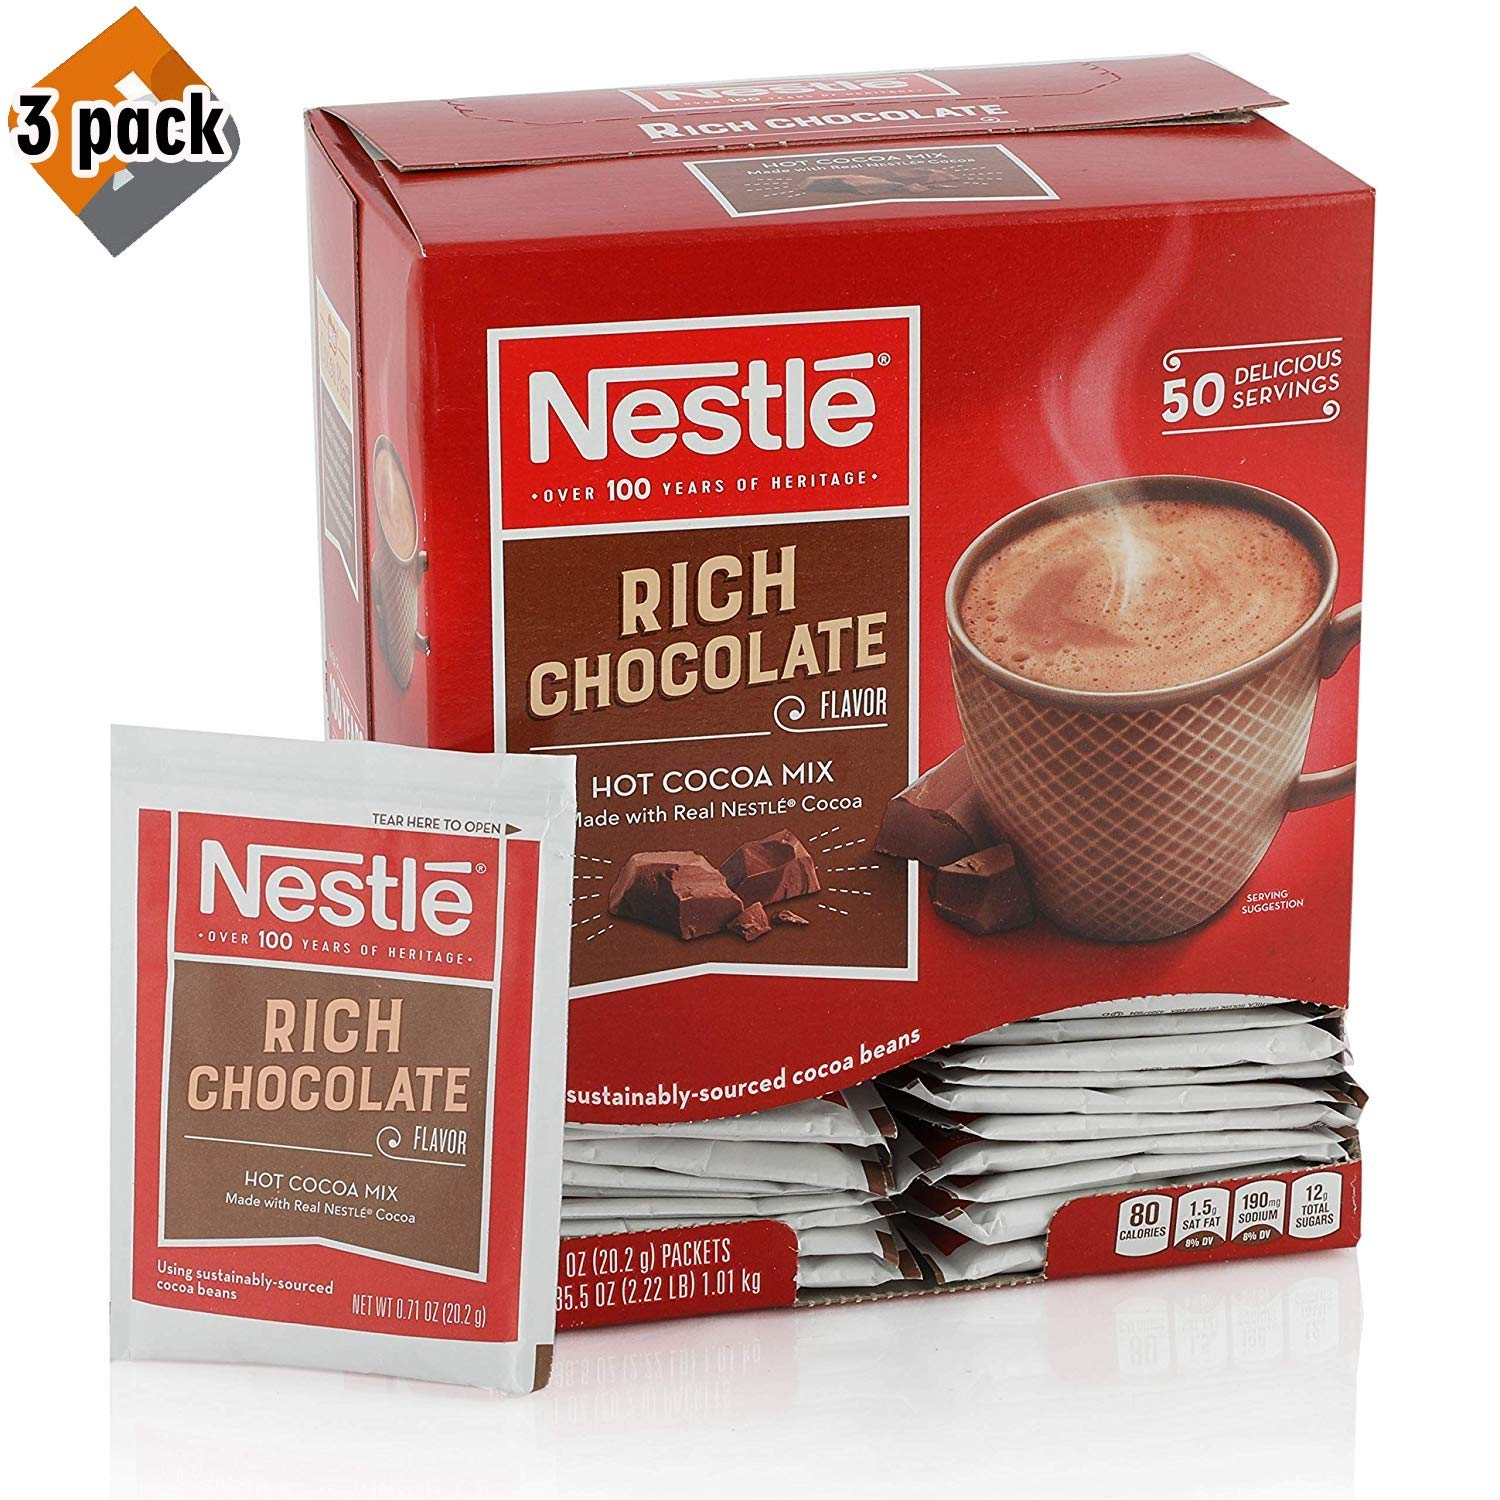 Nestle Hot Chocolate Mix, Hot Cocoa, Rich Chocolate Flavor, Made with Real Cocoa, 50 Count - 3 Pack by Nestle Hot Cocoa